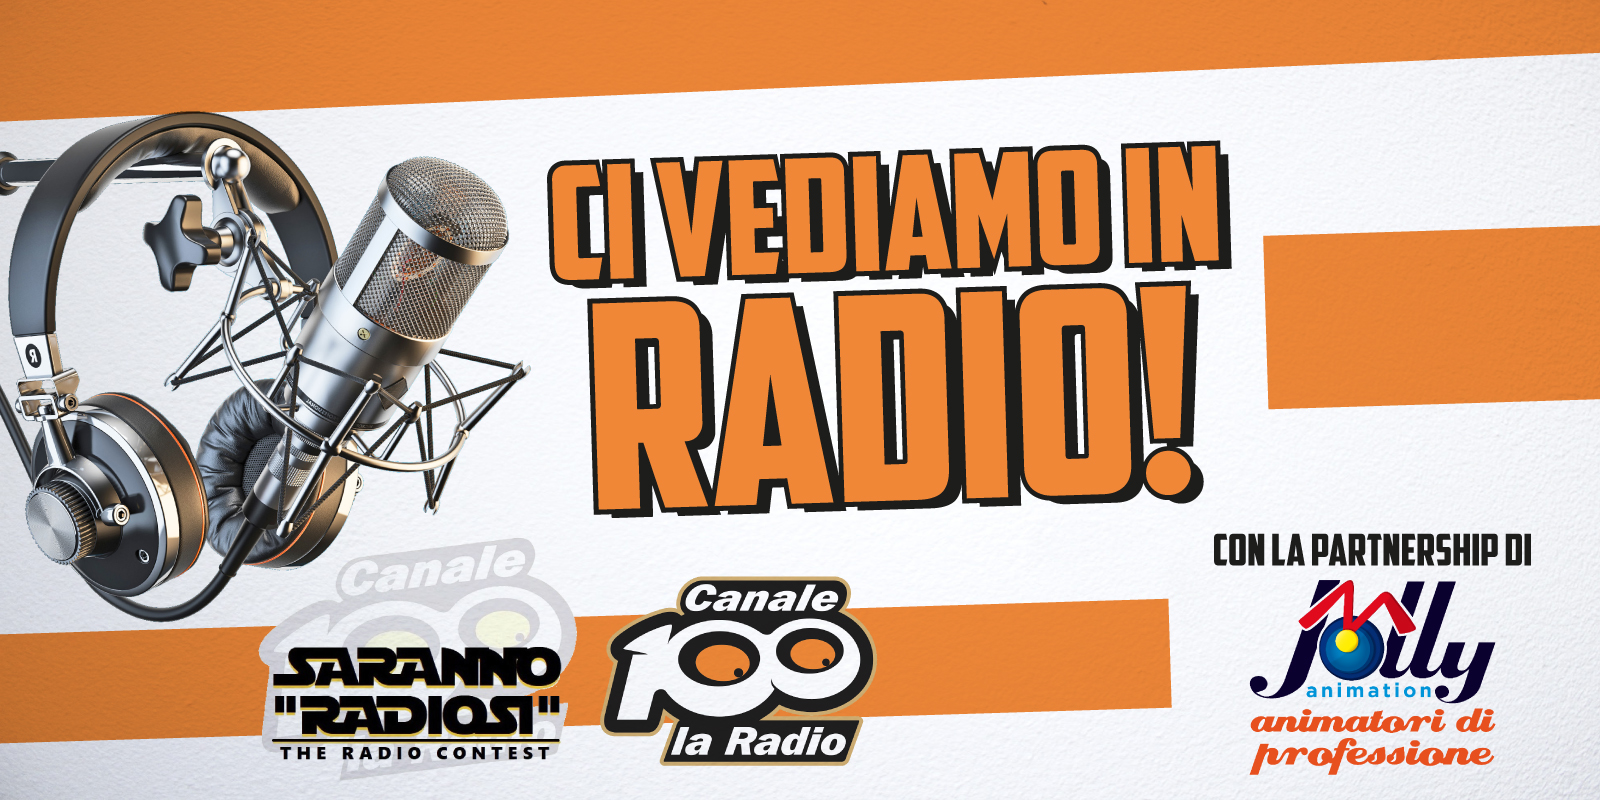 Jolly Animation partner di Radio Canale 100